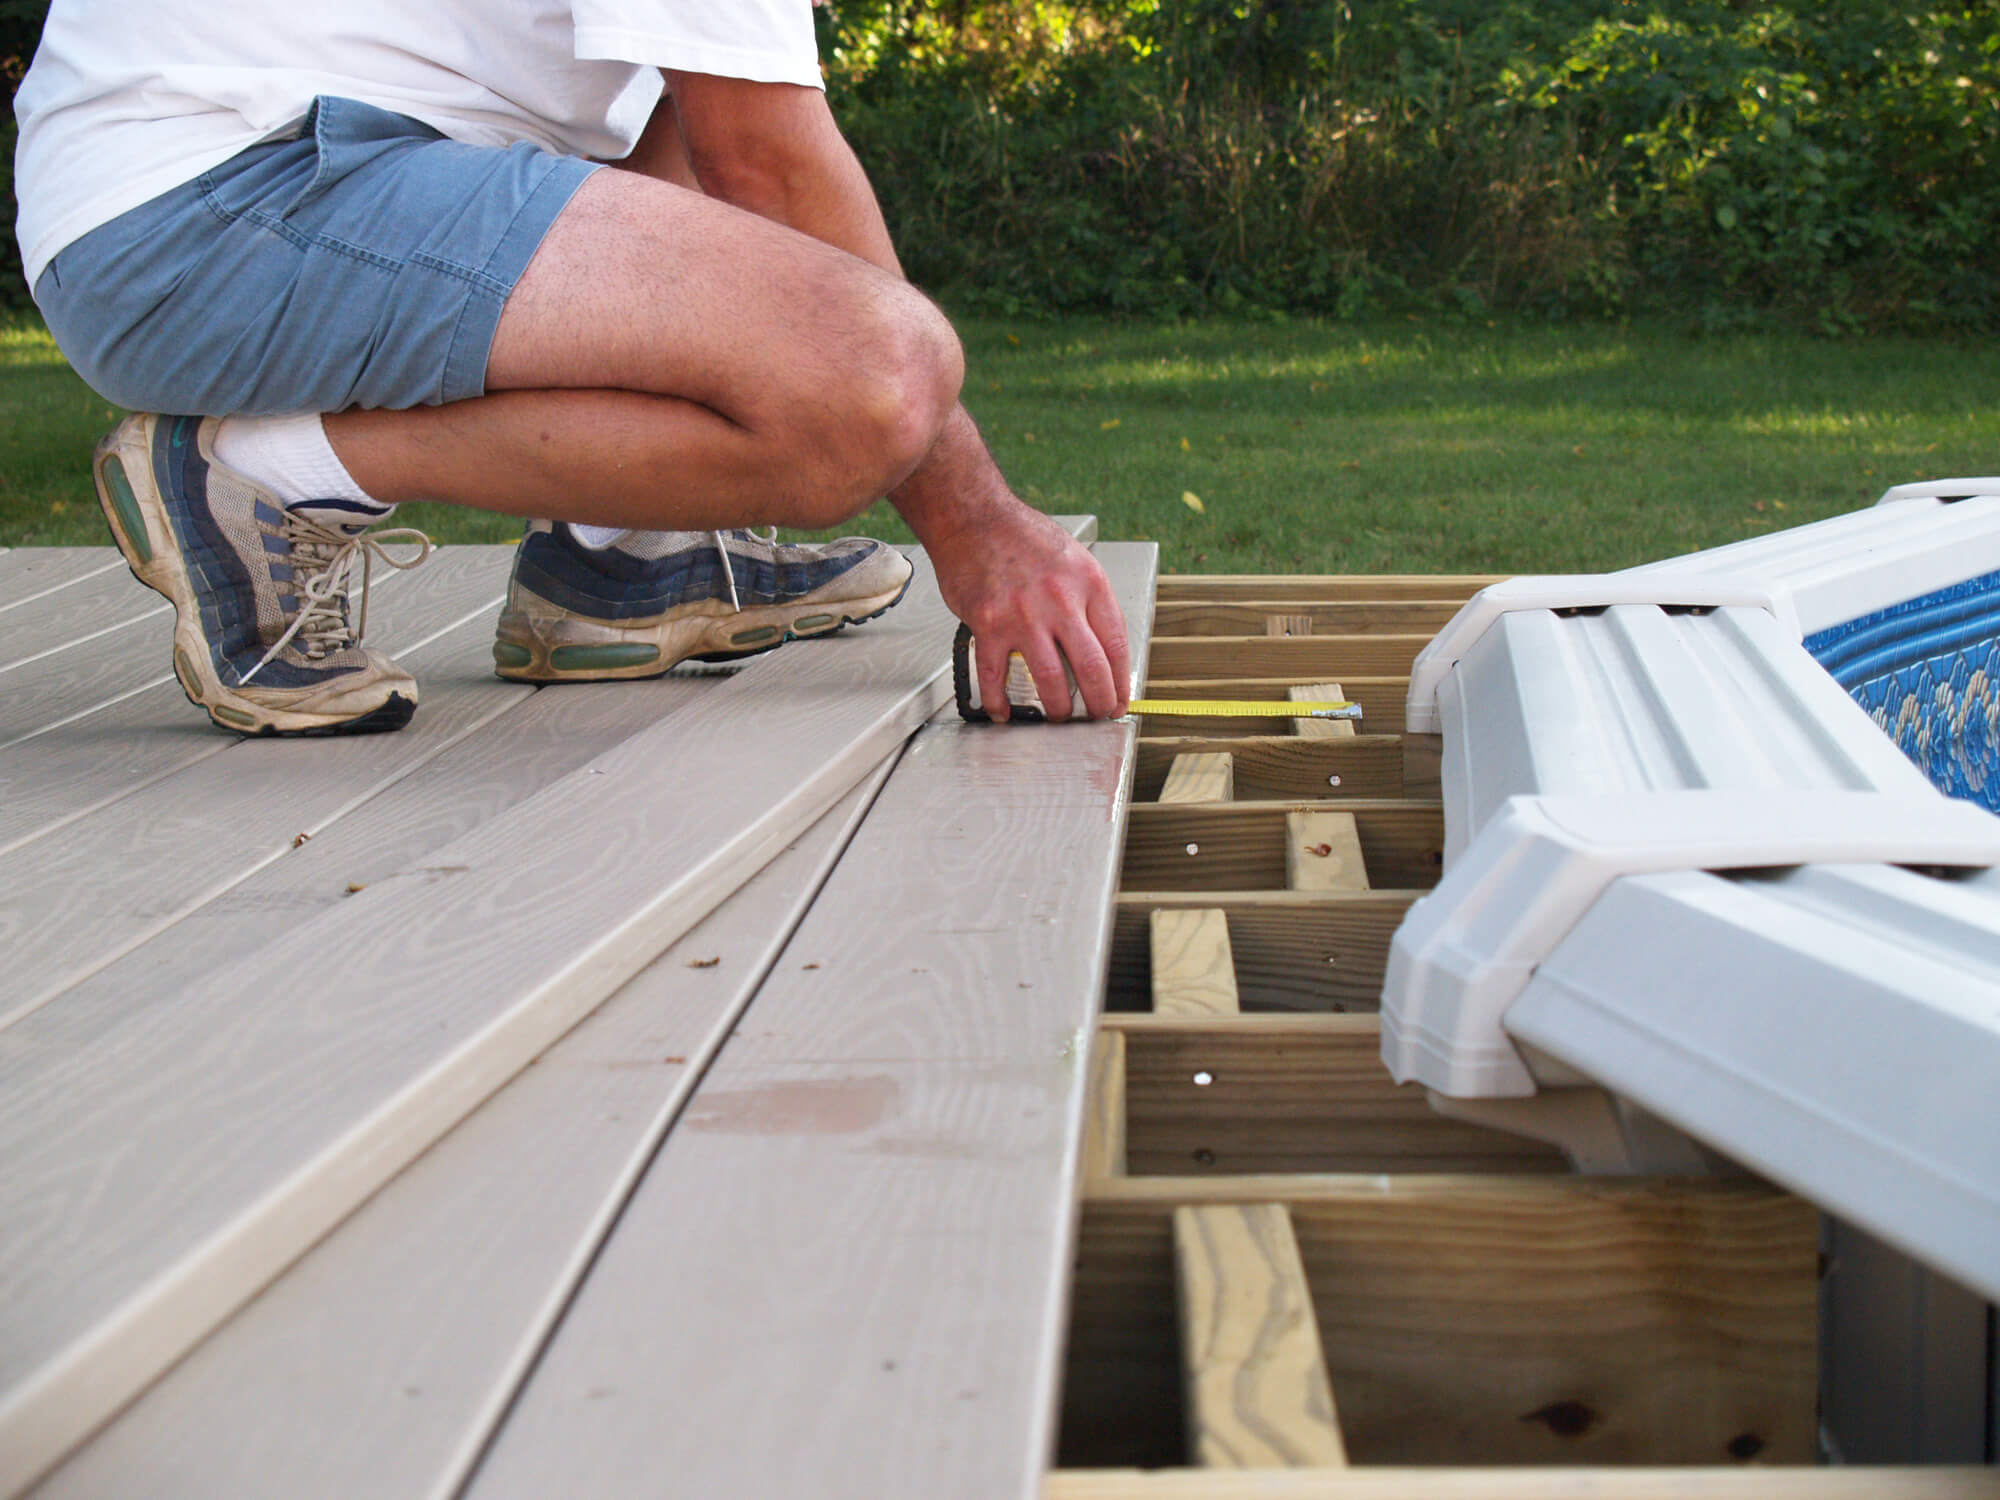 A landscaper is doing a decking in the garden.